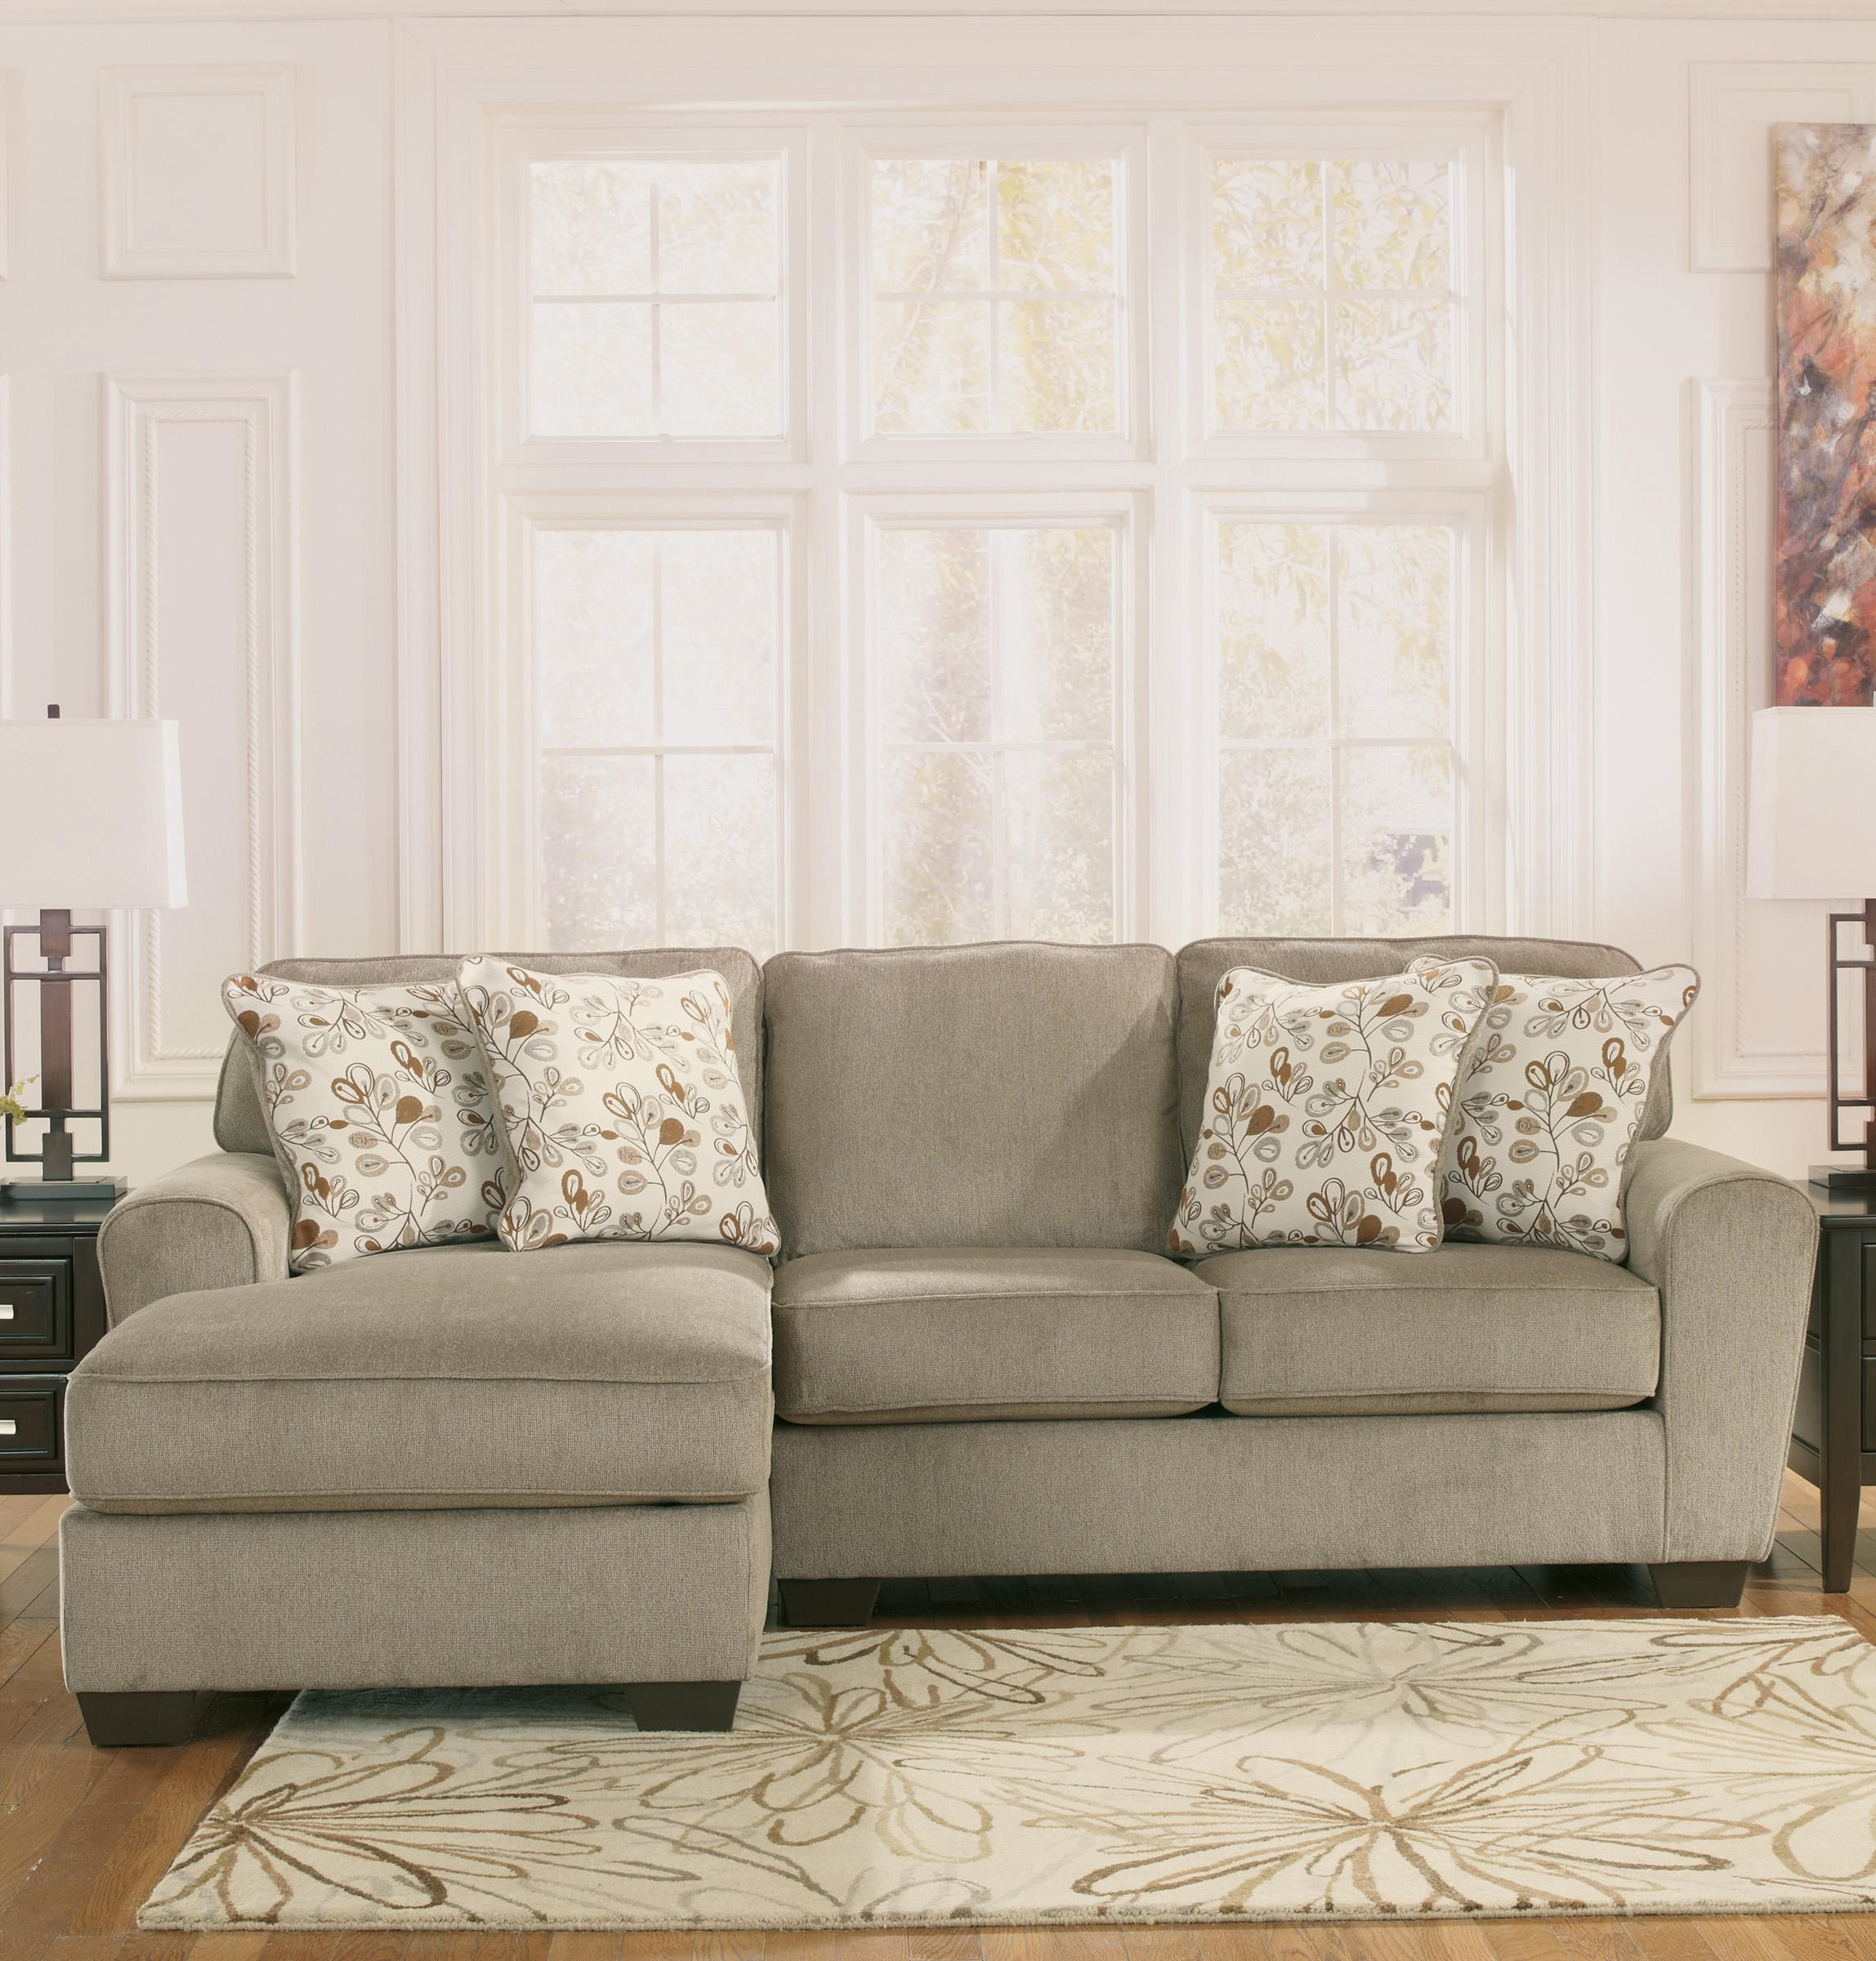 Ashley furniture sectional couches Soft Plush Ashley Furniture Patola Park Patina 2piece Sectional With Left Chaise Van Hill Furniture Ashley Furniture Patola Park Patina 2piece Sectional With Left